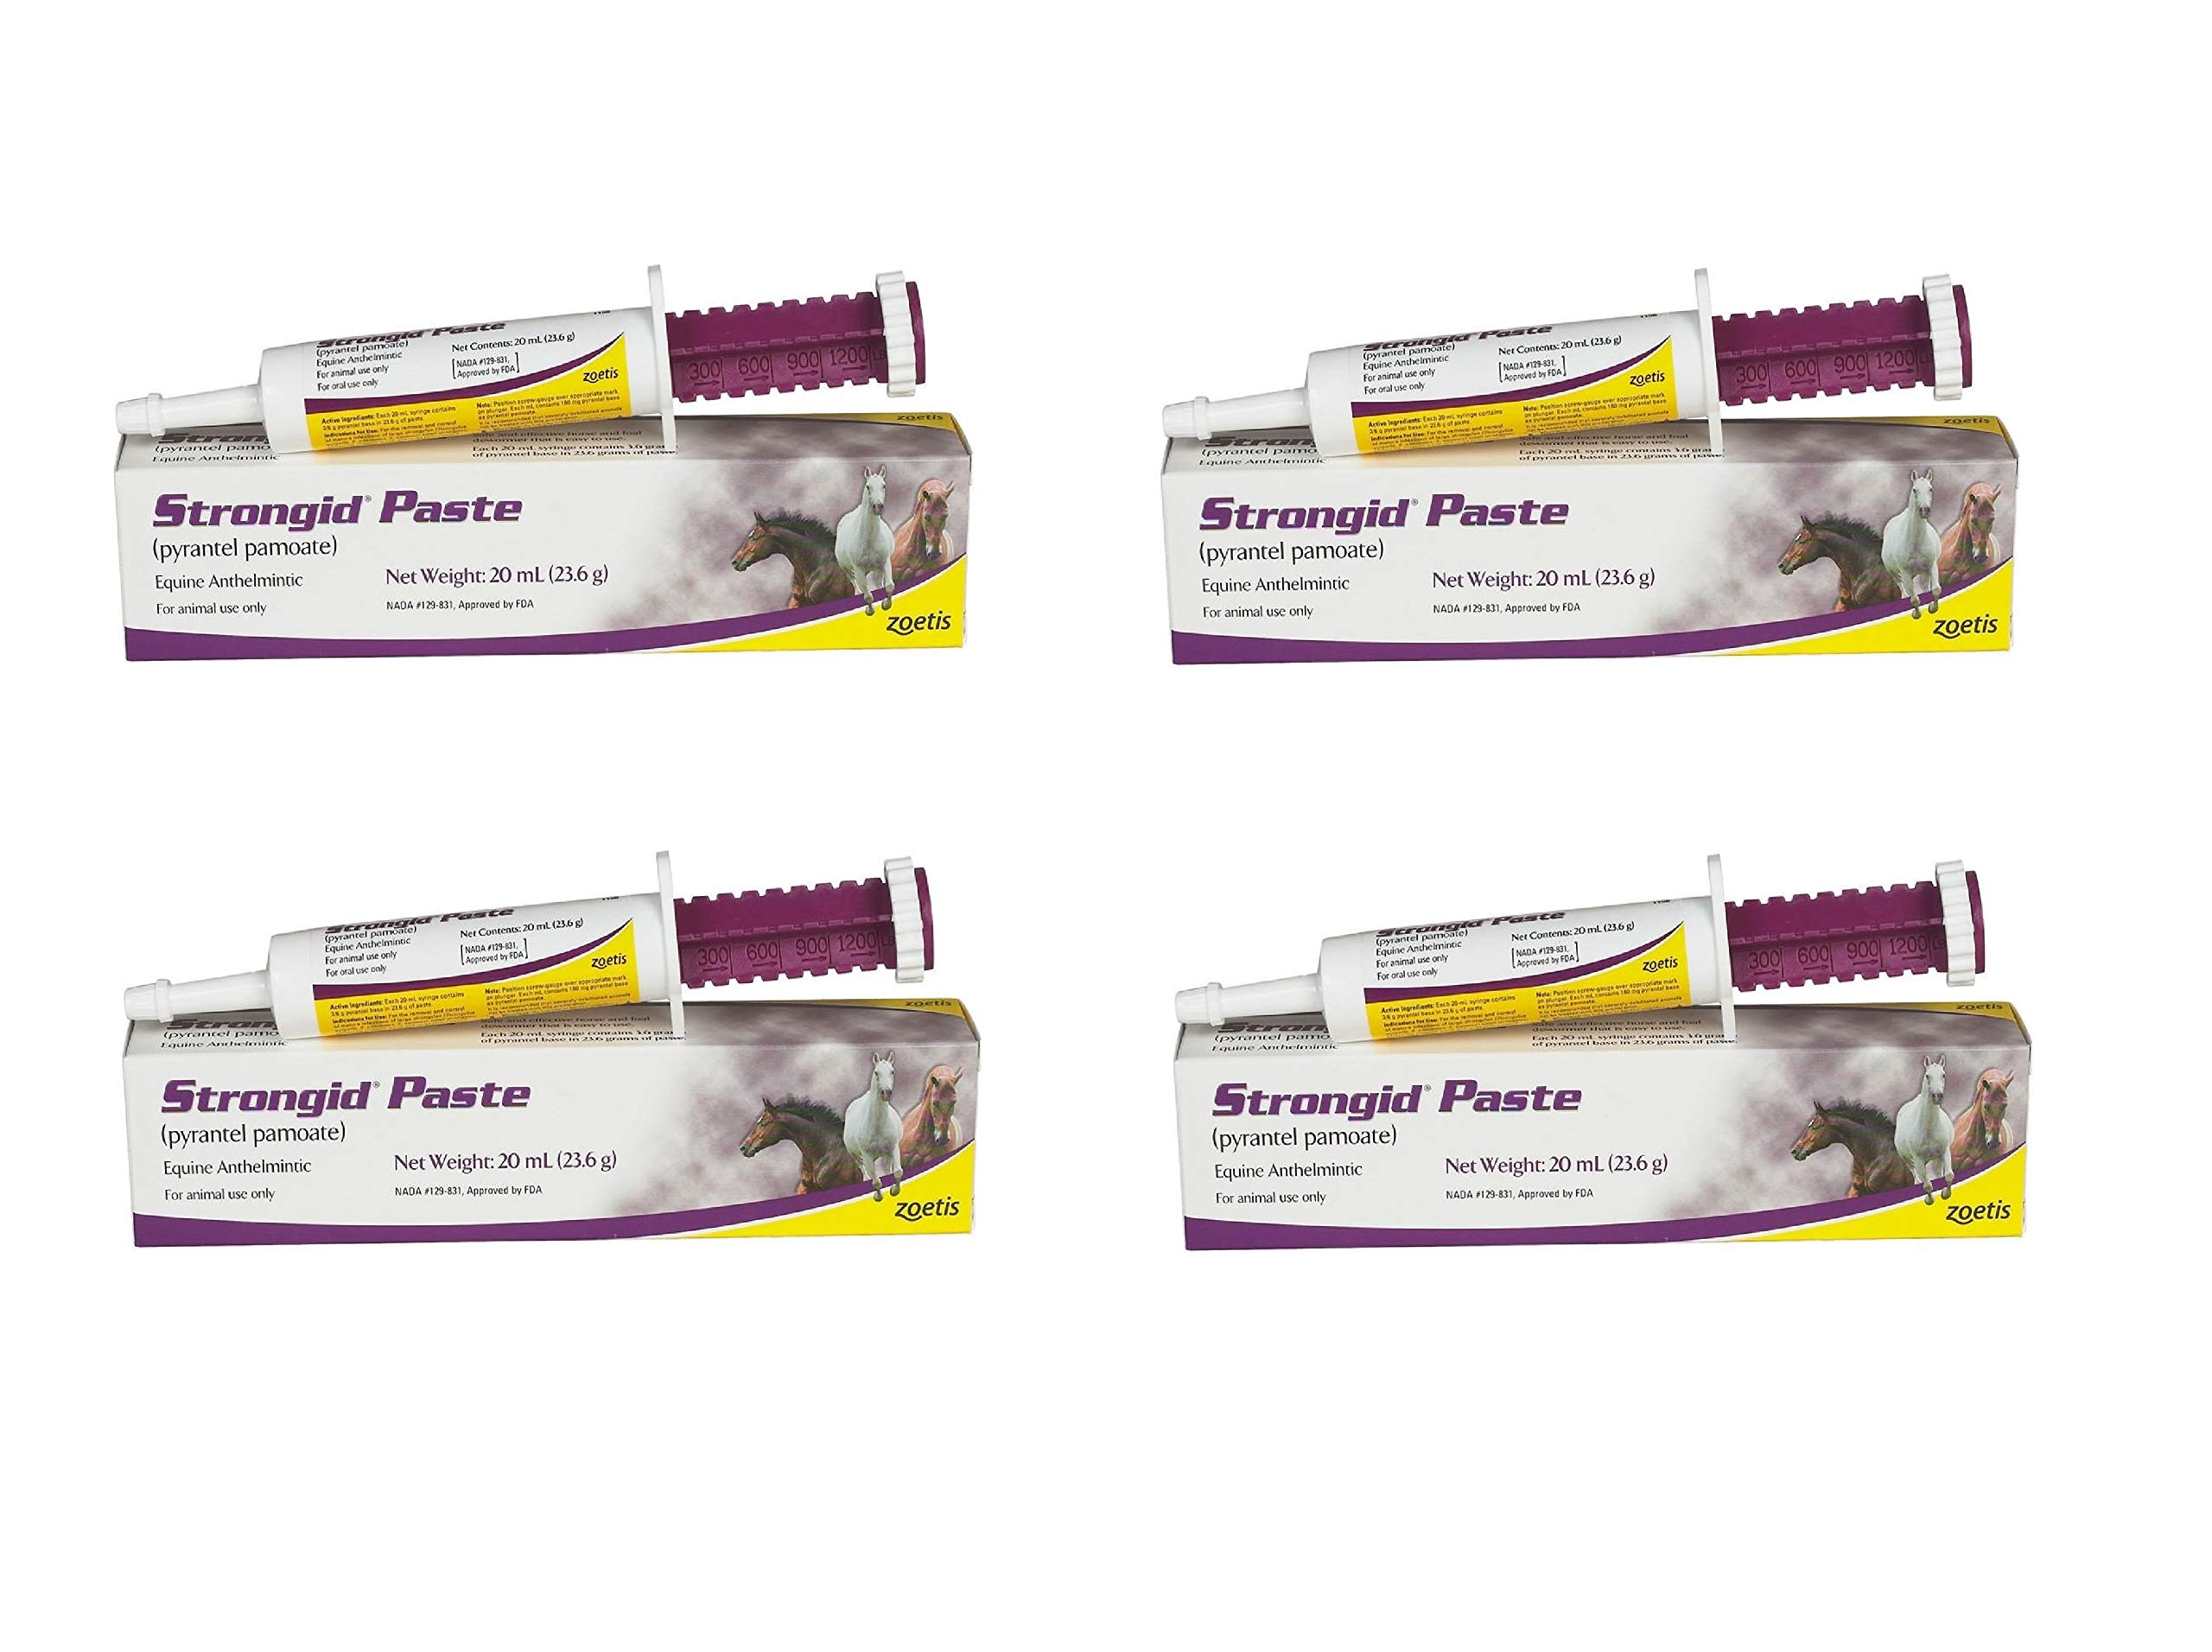 Pfizer Strongid Dewormer Paste for Horses, 23.6gm (4 Pack)